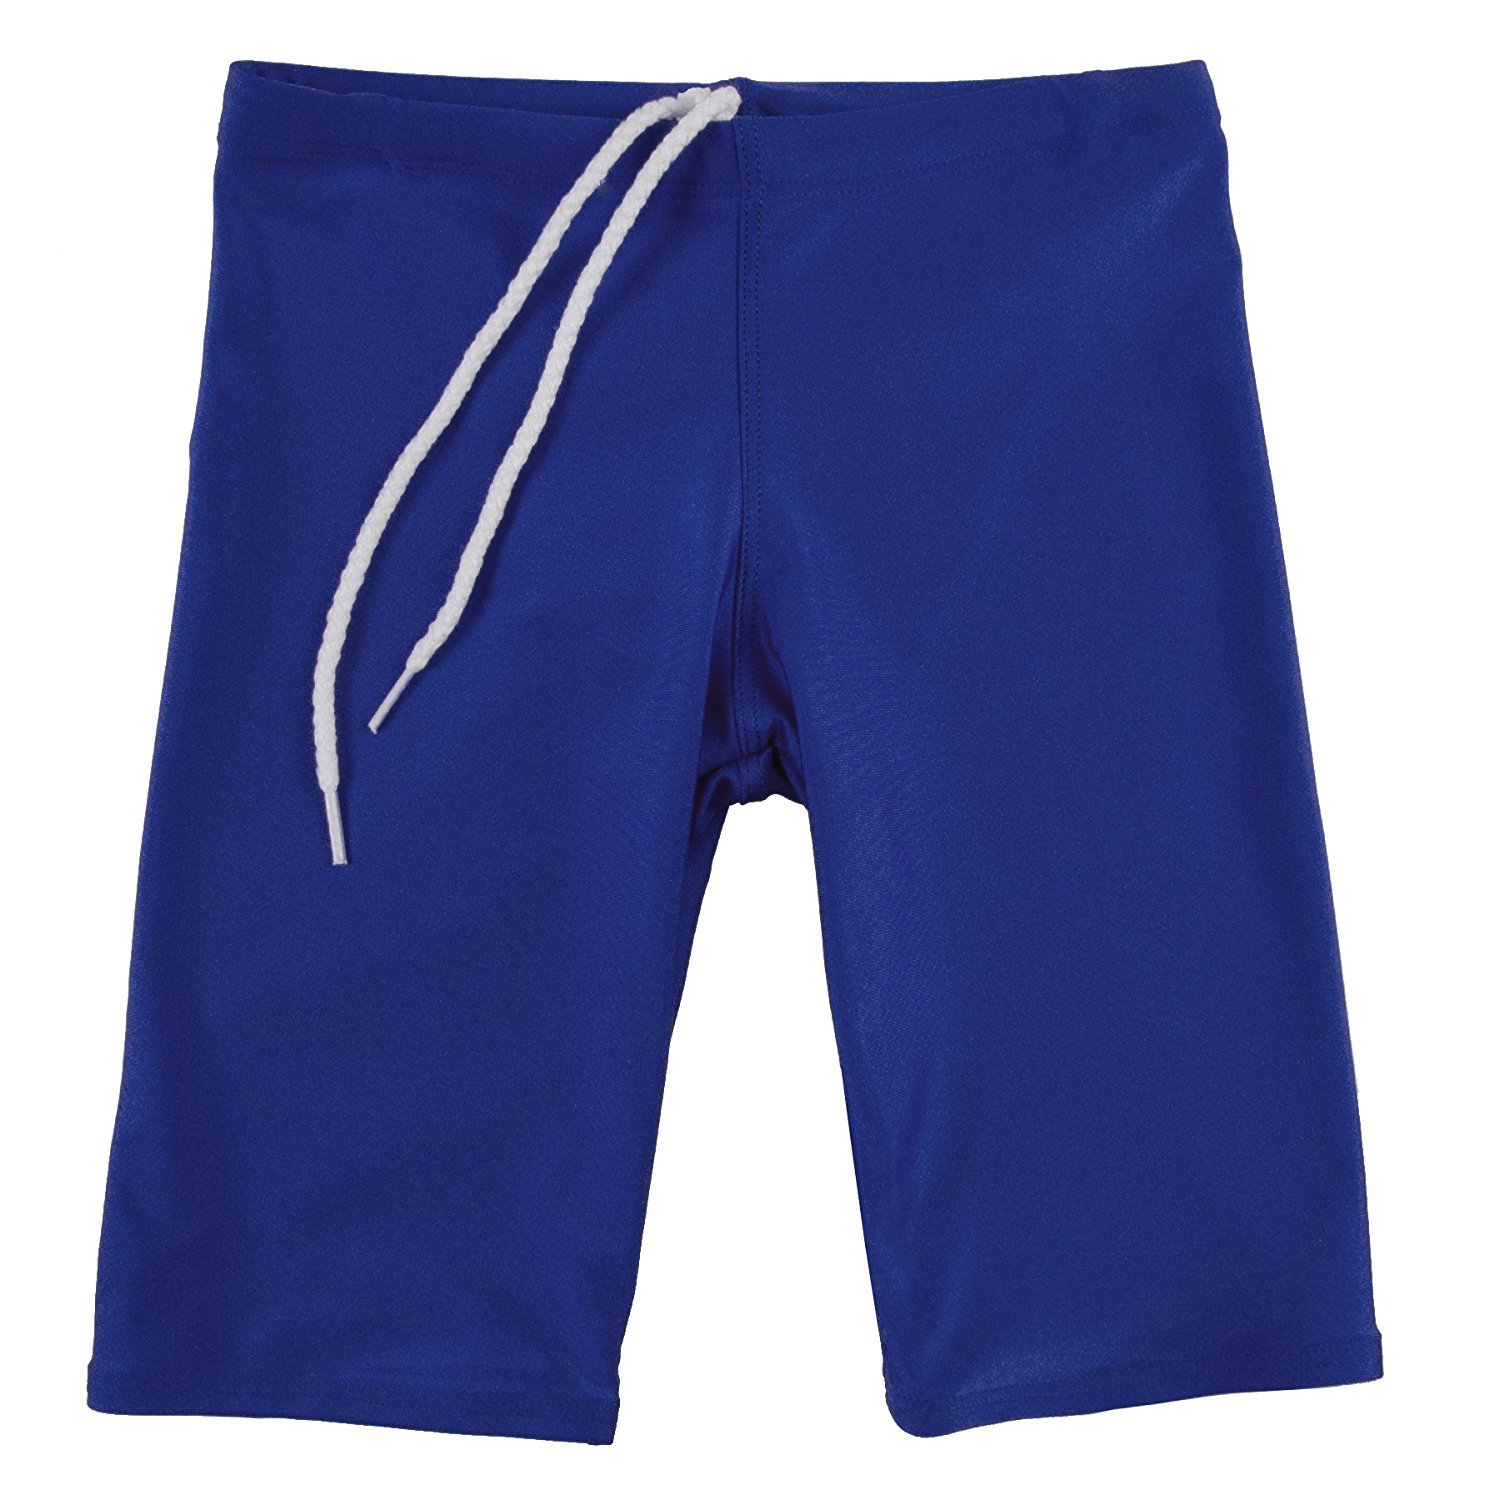 GaryM Kids Boys Solid Jammer Swim Suit (Size 8. Navy)